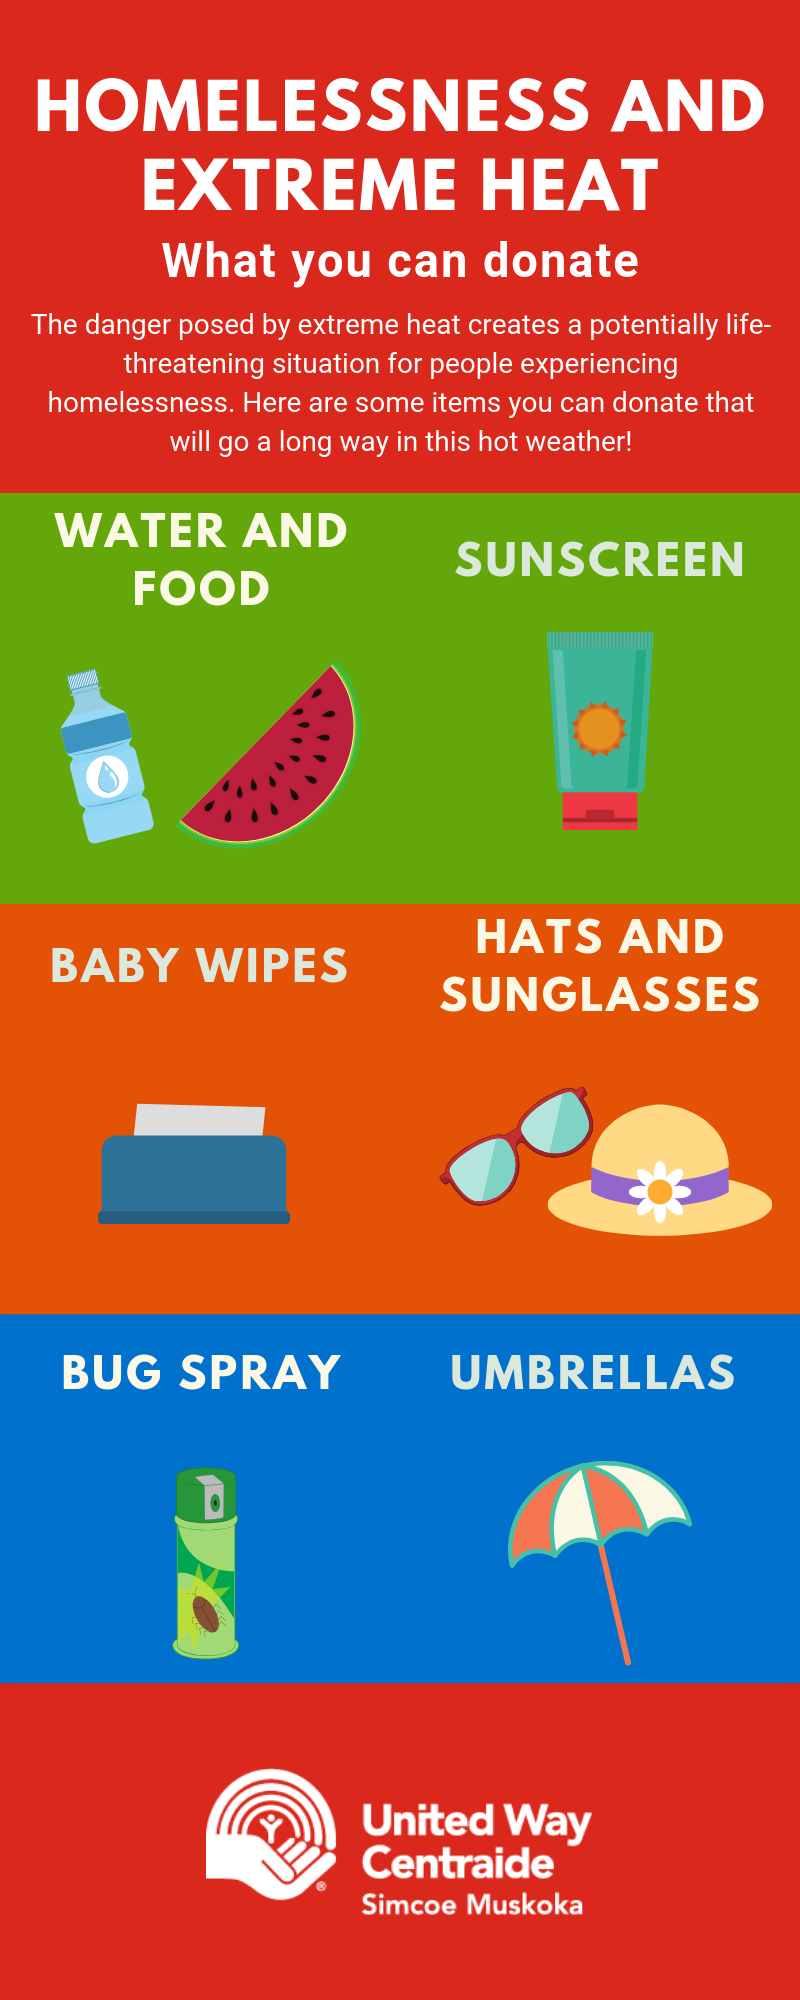 HOMELESSNESS AND EXTREME HEAT What you can donate The danger posed by extreme heat creates a potentially life-threatening situation for people experiencing homelessness. Here are some items you can donate that will go a long way in this hot weather! WATER AND FOOD SUNSCREEN BABY WIPES HATS AND SUNGLASSES BUG SPRAY UMBRELLAS